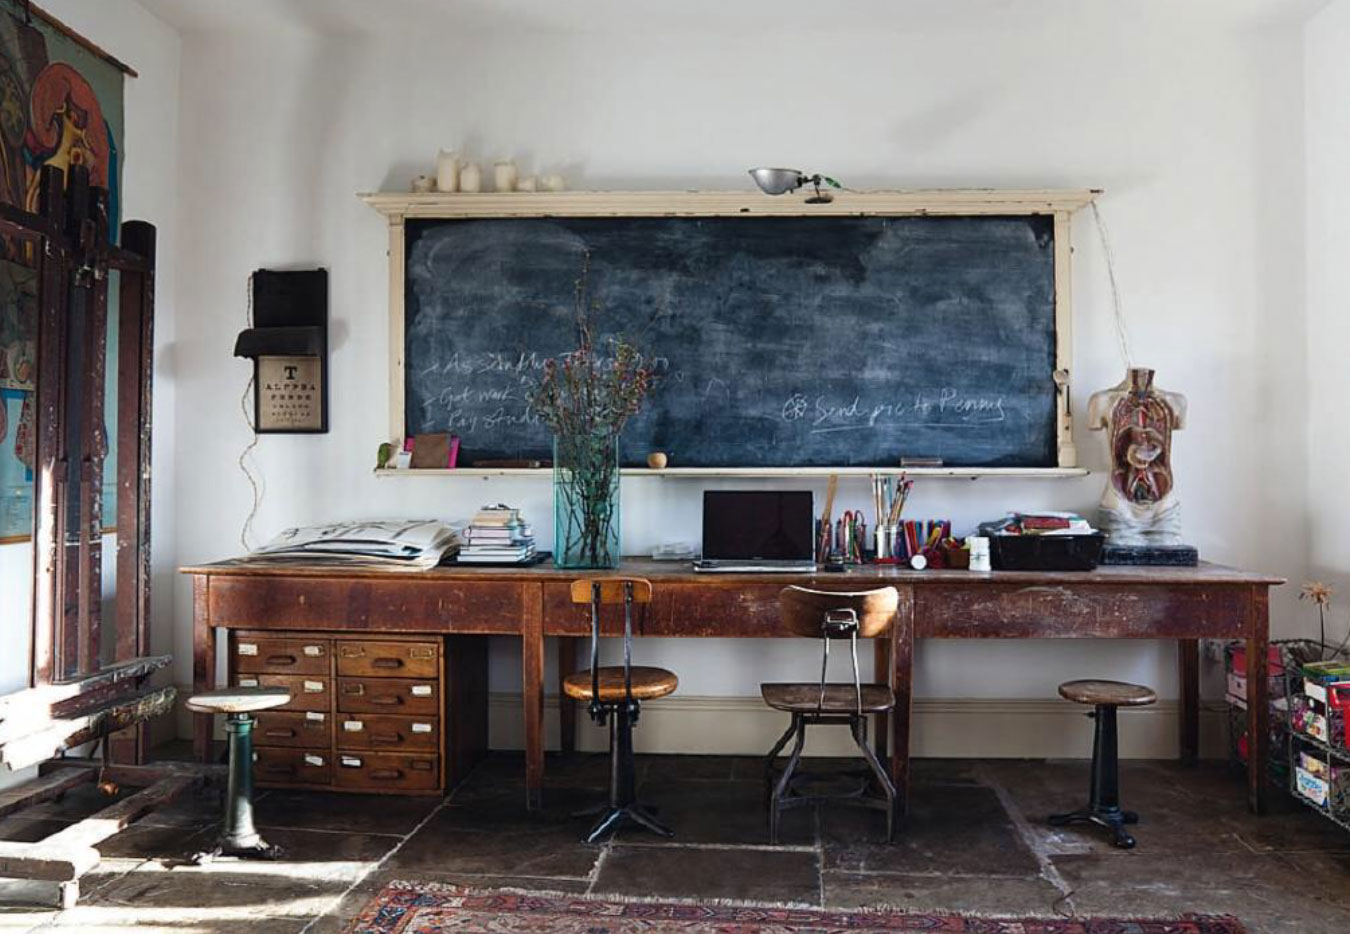 Deluxe Rustic Home Rustic Home Office D Rustic Home Rustic Home Office D Rustic House Ideas Rustic Home Ideas Pinterest home decor Rustic Home Ideas